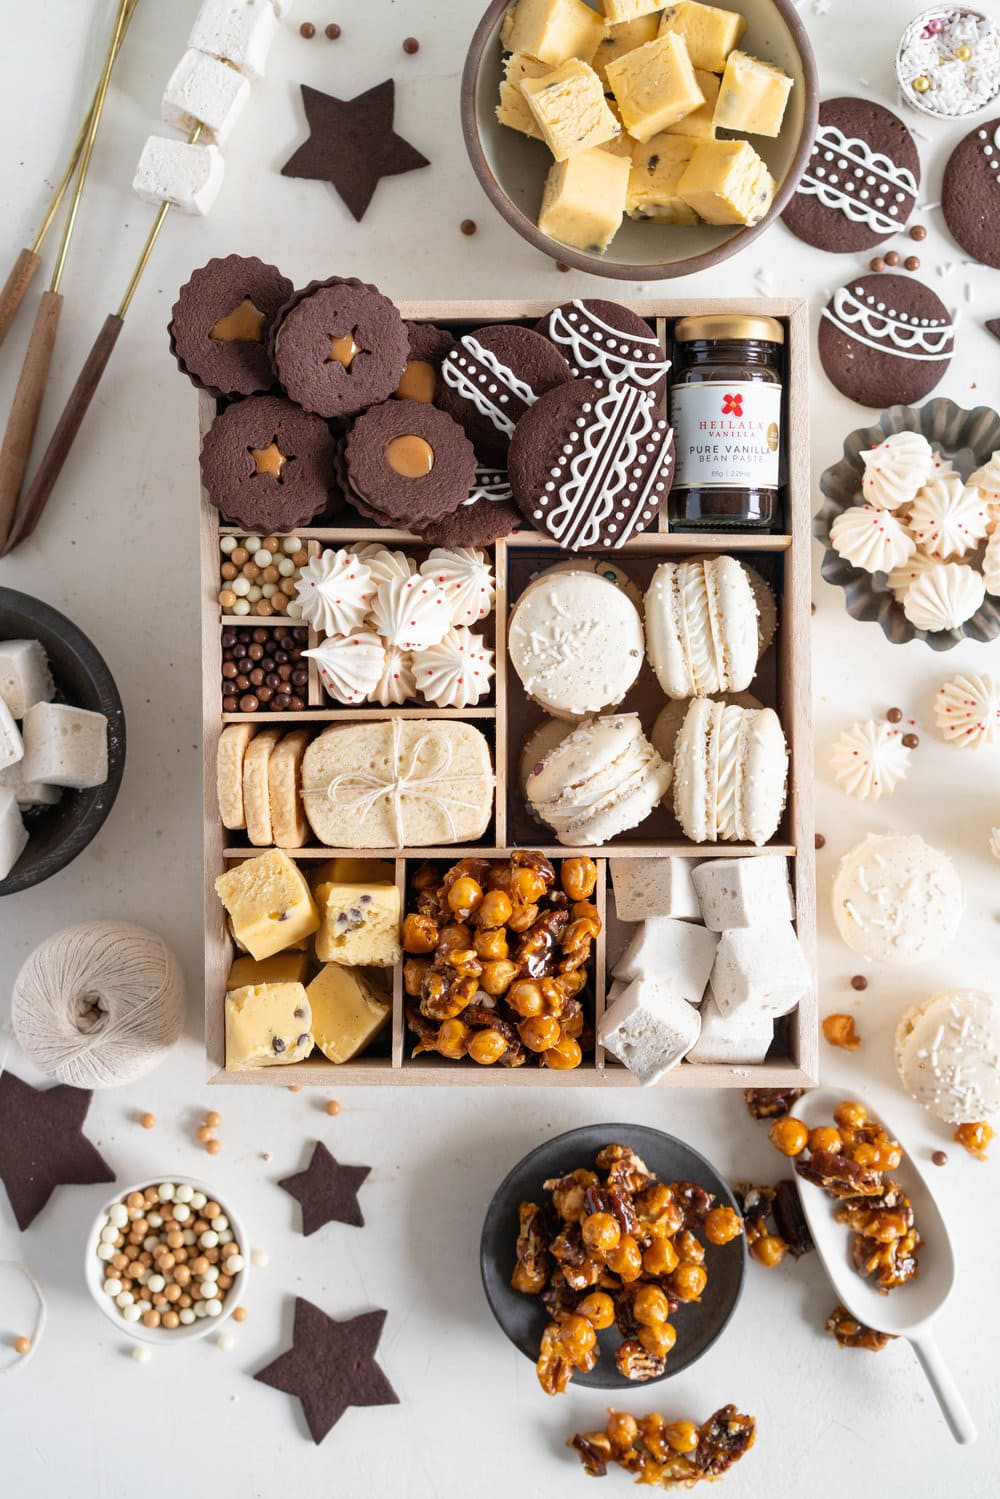 The Ultimate Vanilla Bean Christmas Box. All of the christmas treats for your recipe planning for this upcoming holiday season! Chocolate Shortbread cookies with Vanilla bean Dulce de Leche filling, vanilla bean meringues, vanilla bean macarons, Vanilla bean shortbread, vanilla bean passionfruit fudge, vanilla bean salted caramel nut mix, and vanilla bean marshmallows. The perfect treat box for christmas!